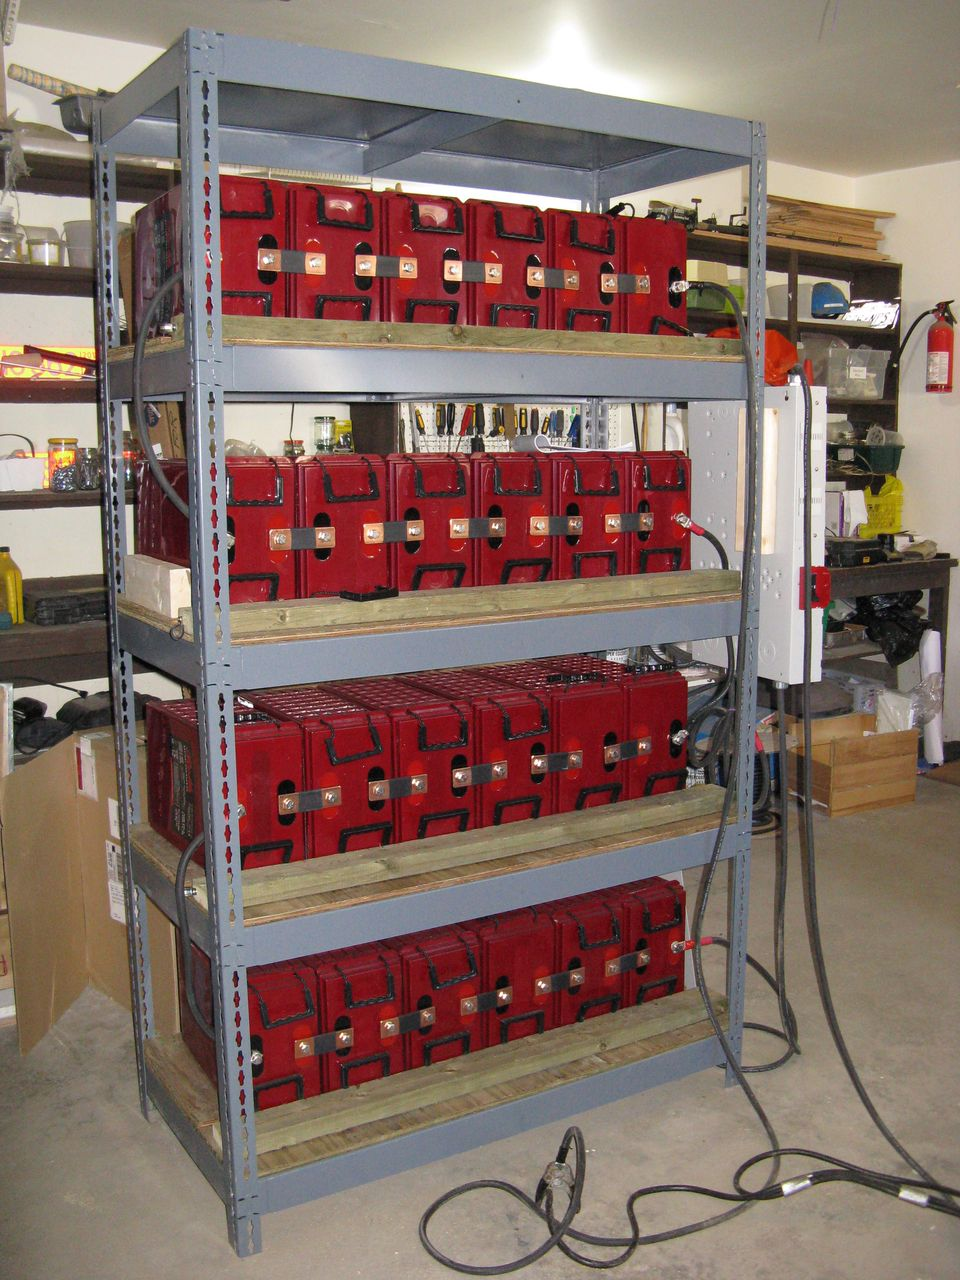 The system's industrial battery back-up